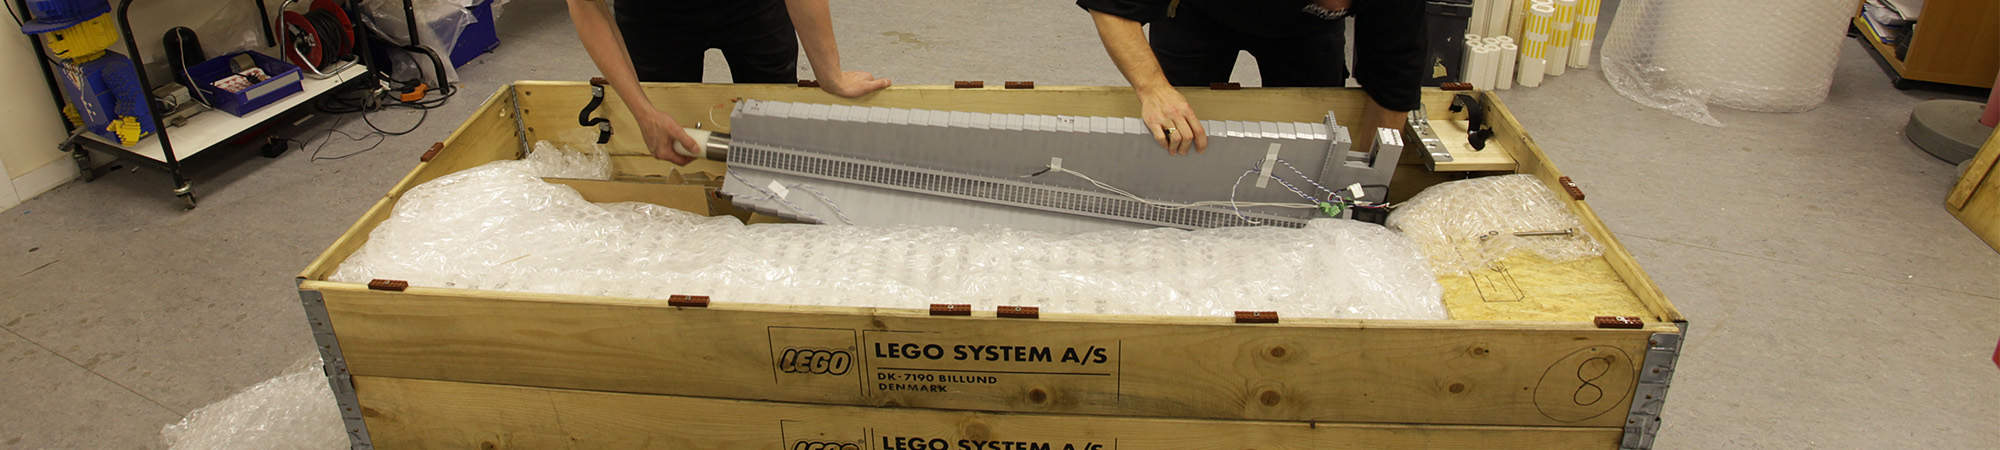 CN Tower lego model being packaged for transportation